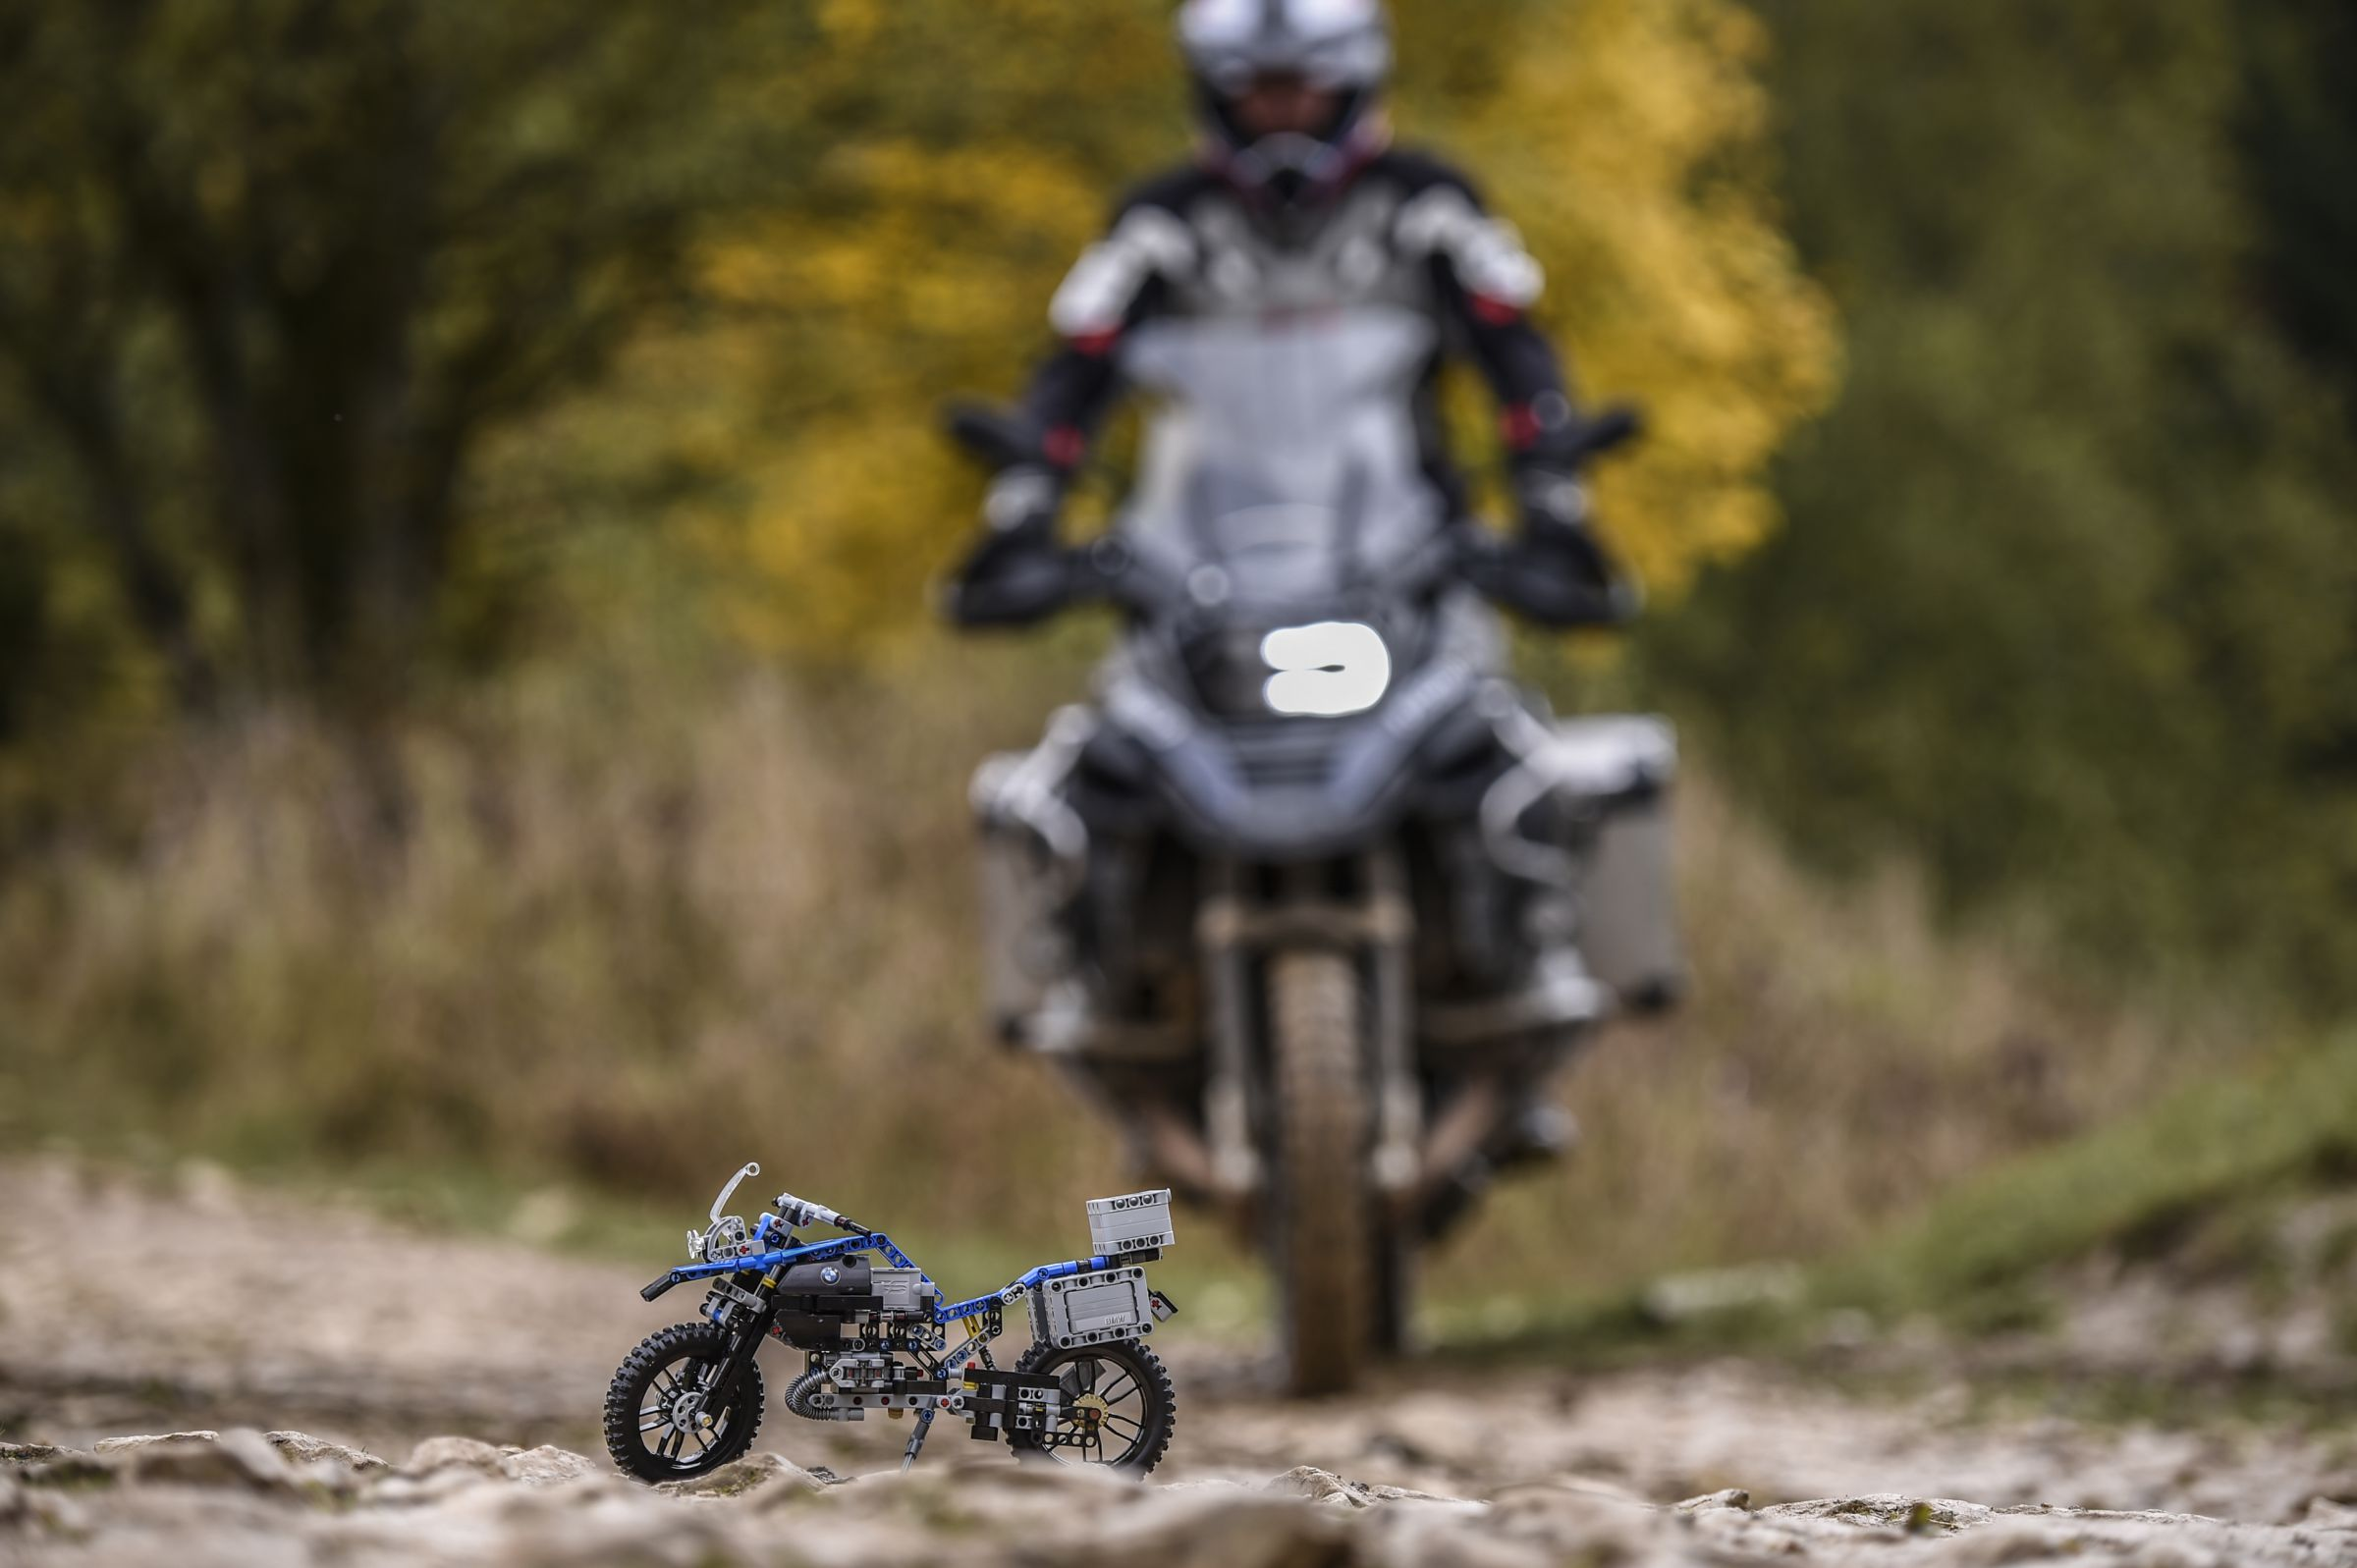 LEGO Technic 42063 BMW R 1200 GS Adventure LEGO_42063_bmw-R-1200-GS-Adventure_img8.jpg